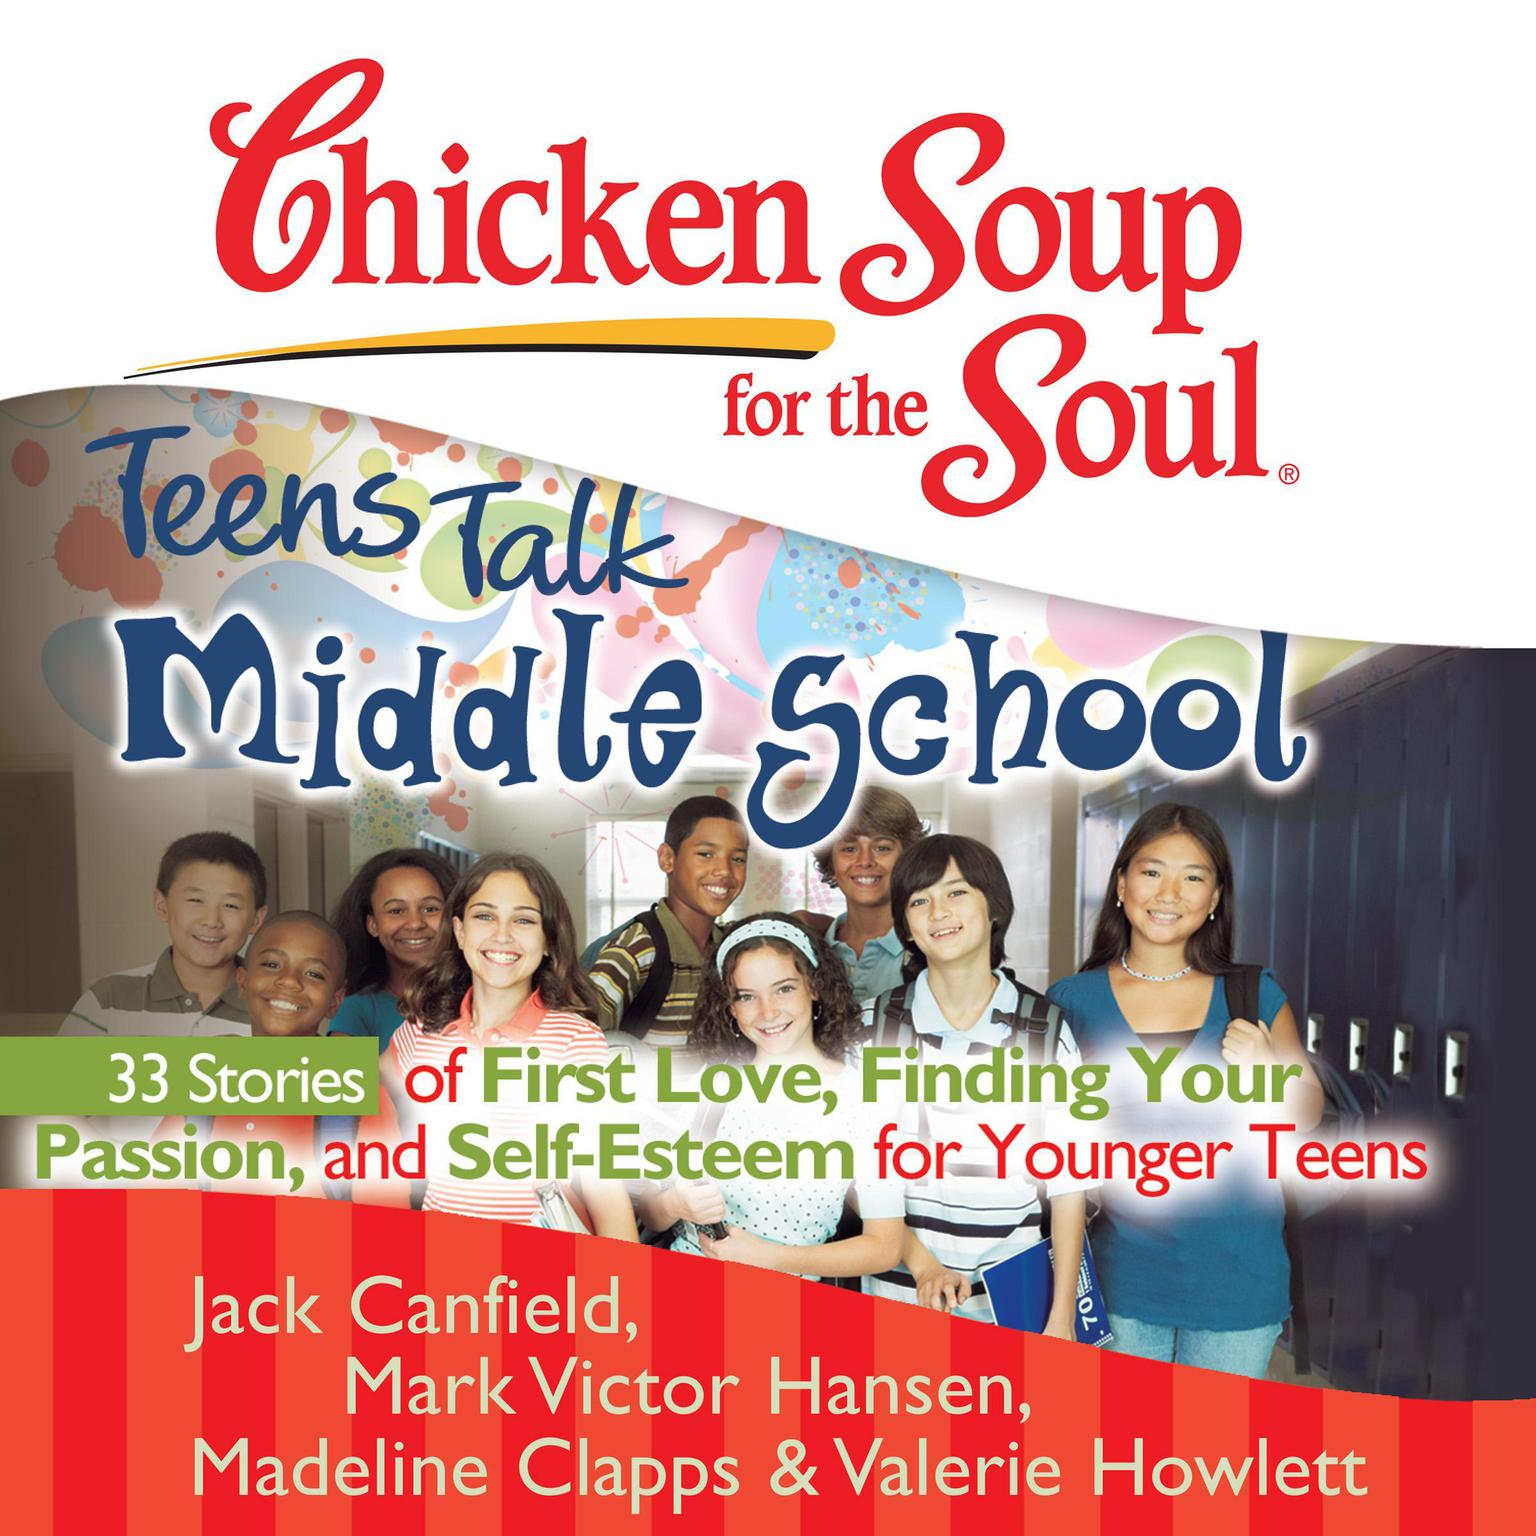 Printable Chicken Soup for the Soul: Teens Talk Middle School - 33 Stories of First Love, Finding Your Passion, and Self-Esteem for Younger Teens Audiobook Cover Art